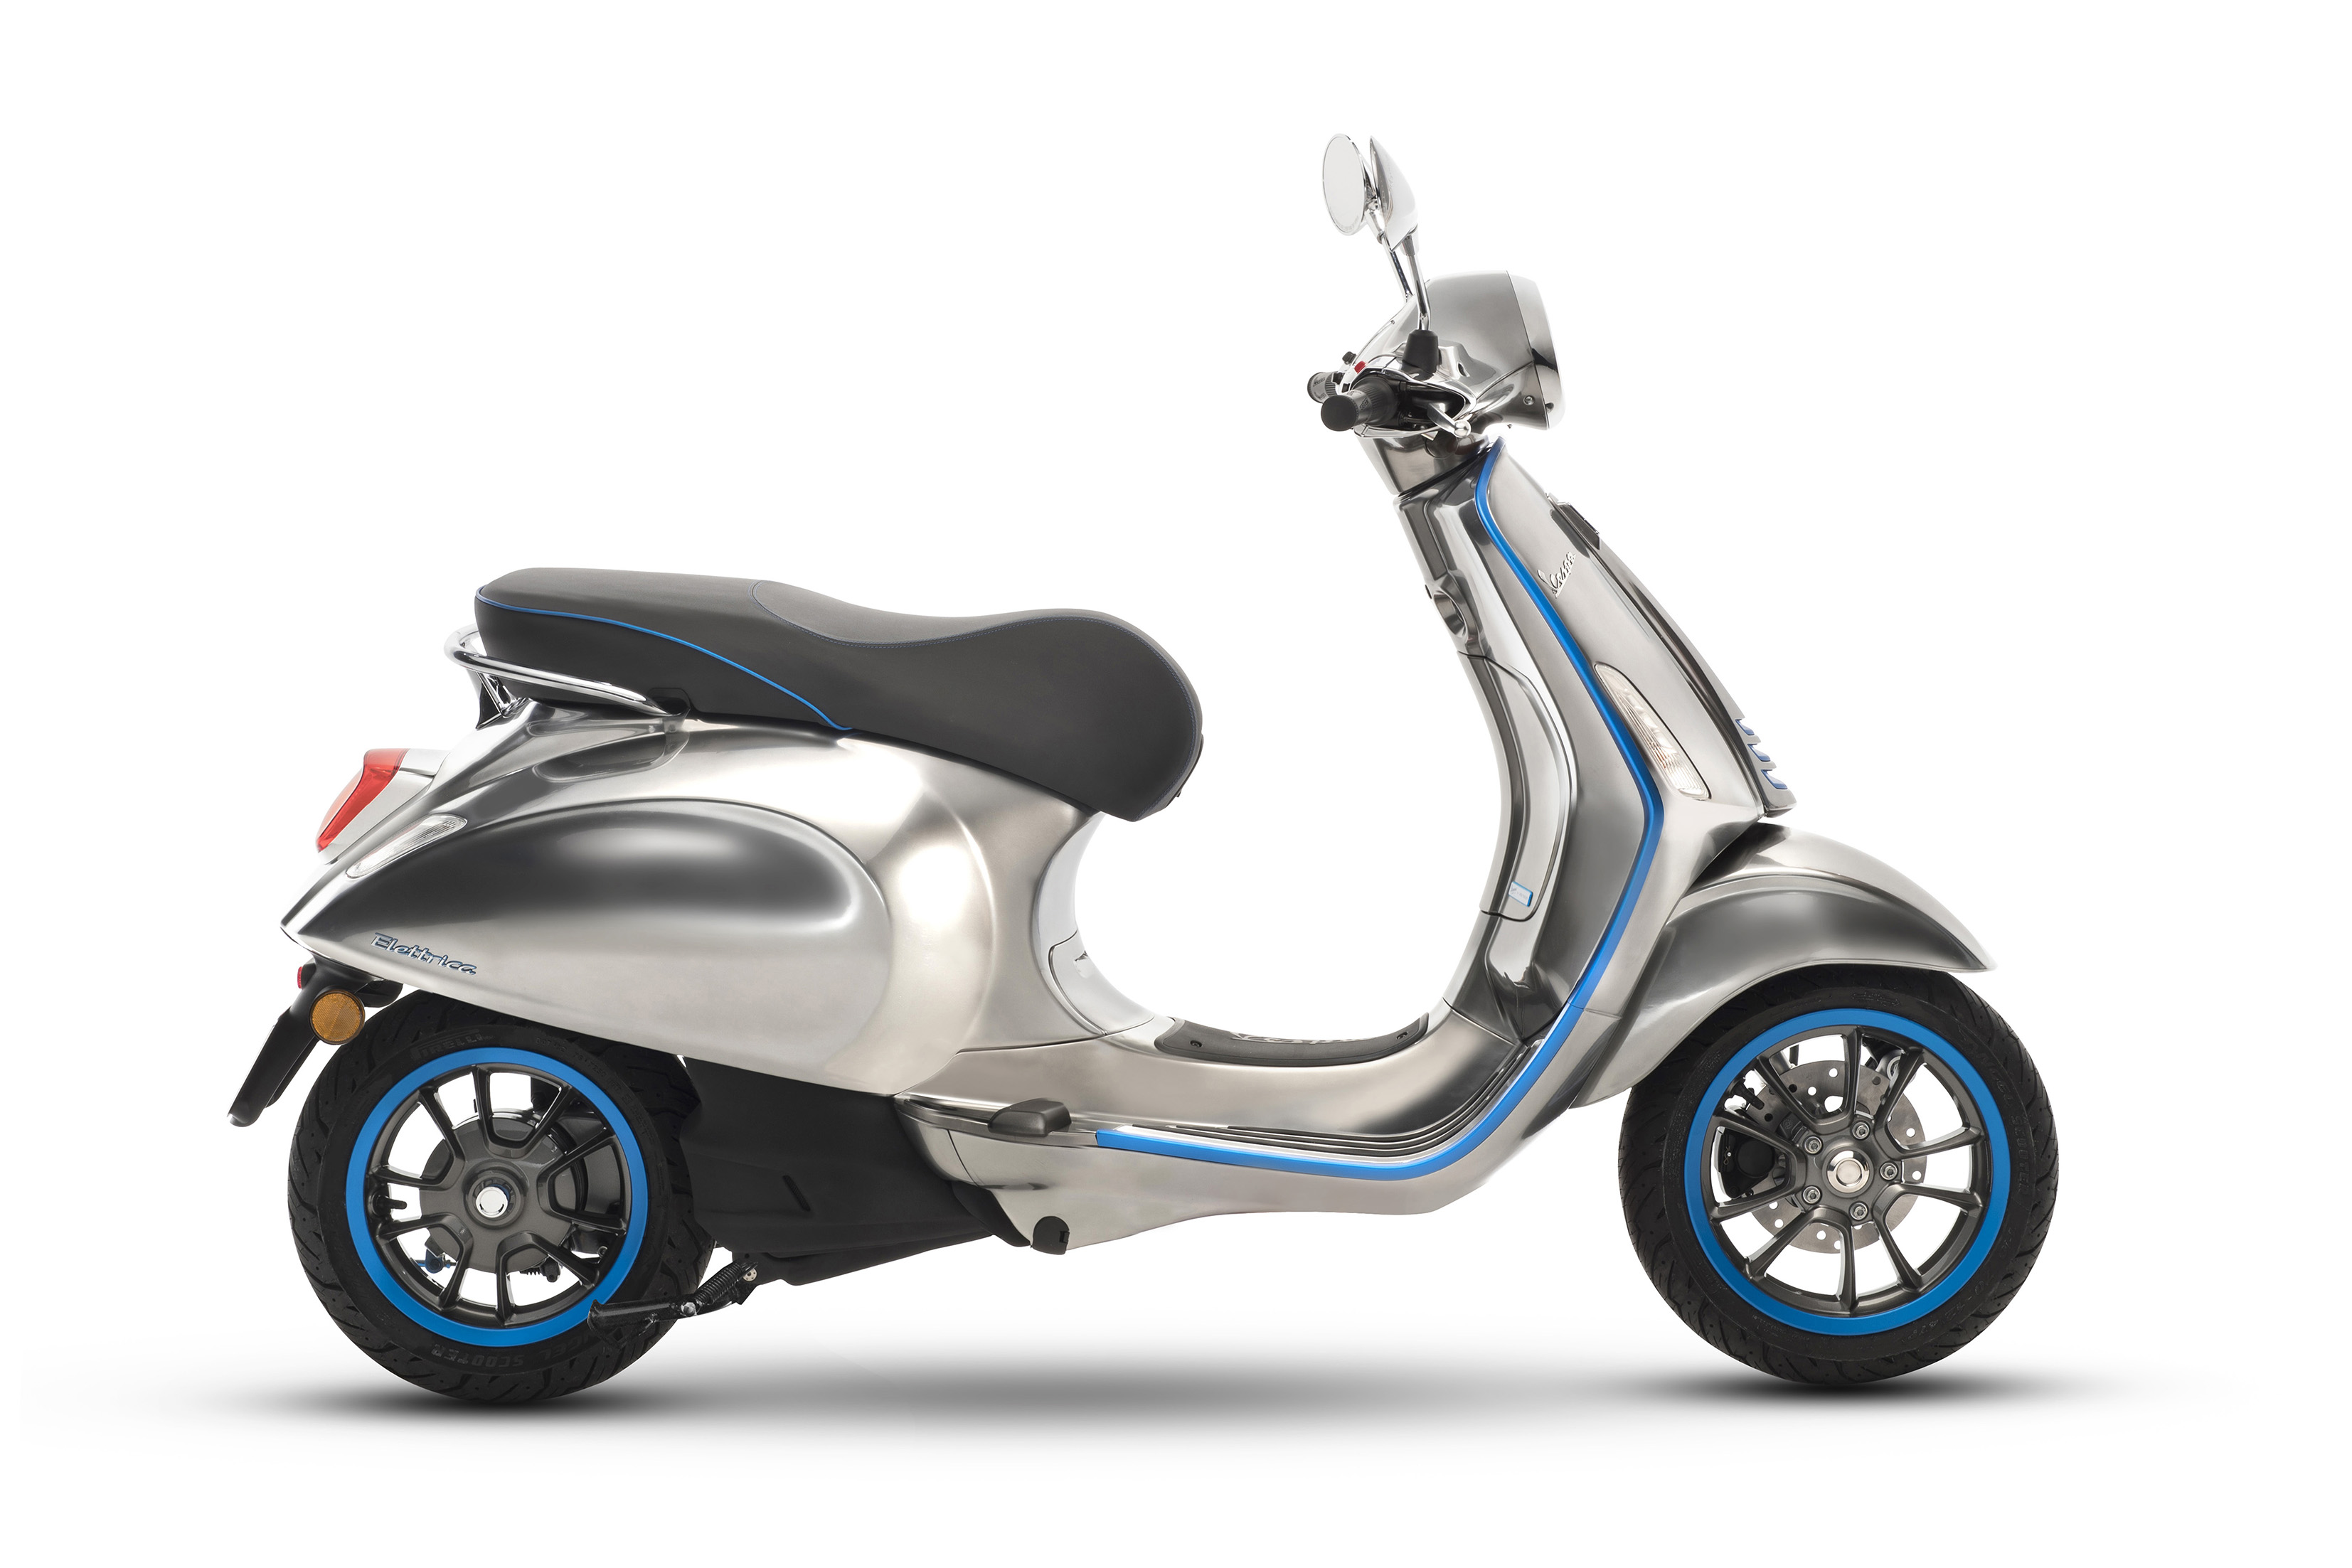 First Vespa Electric Scooter Coming Next Year